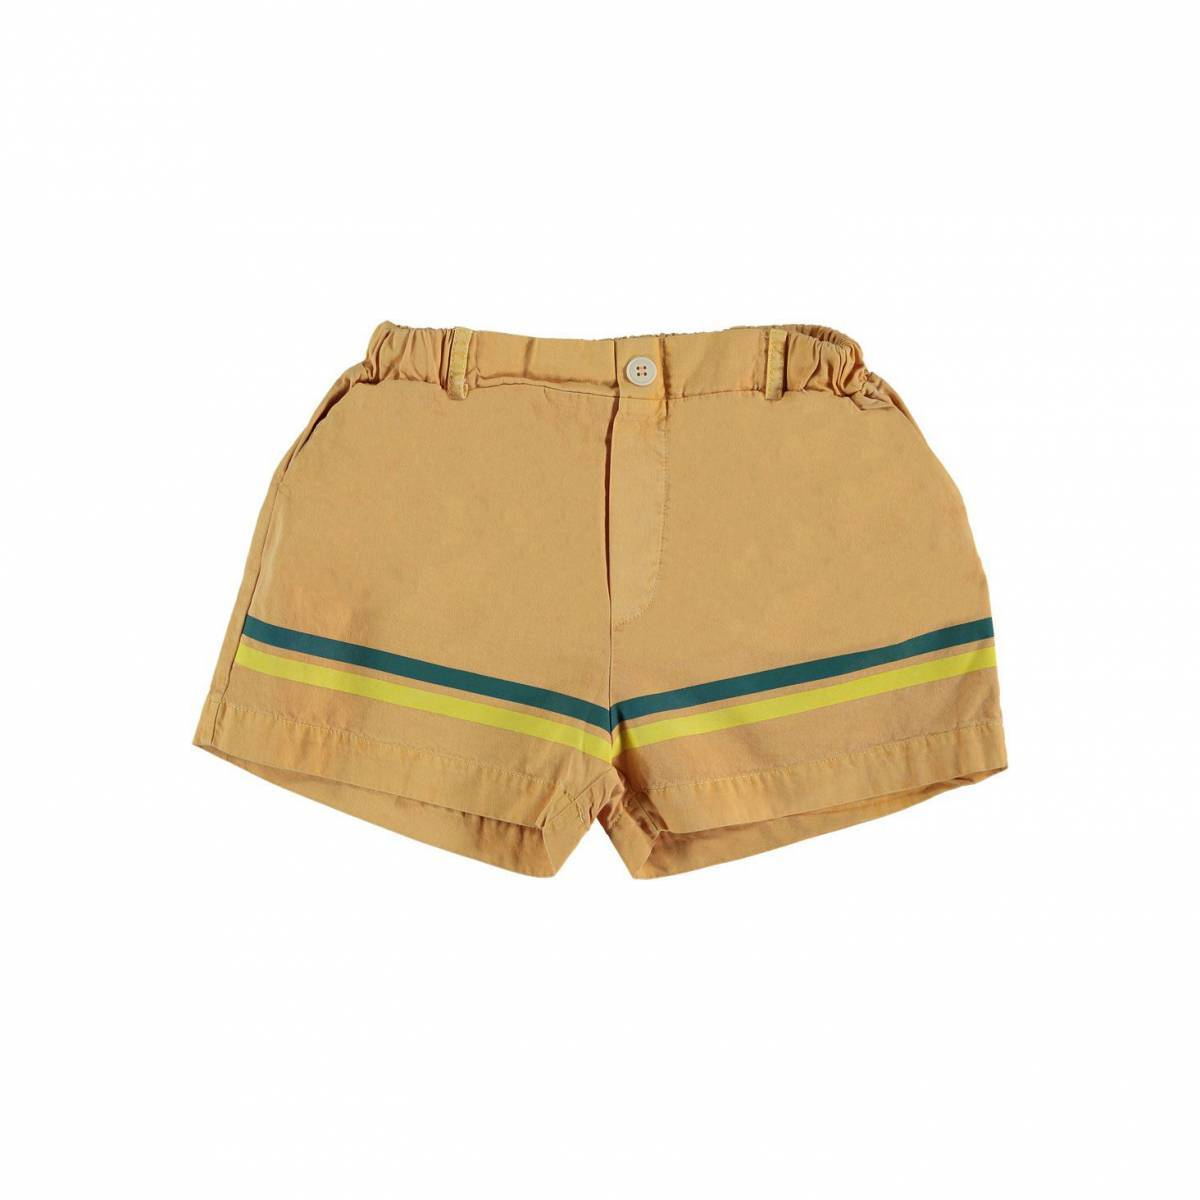 Artisan gold short